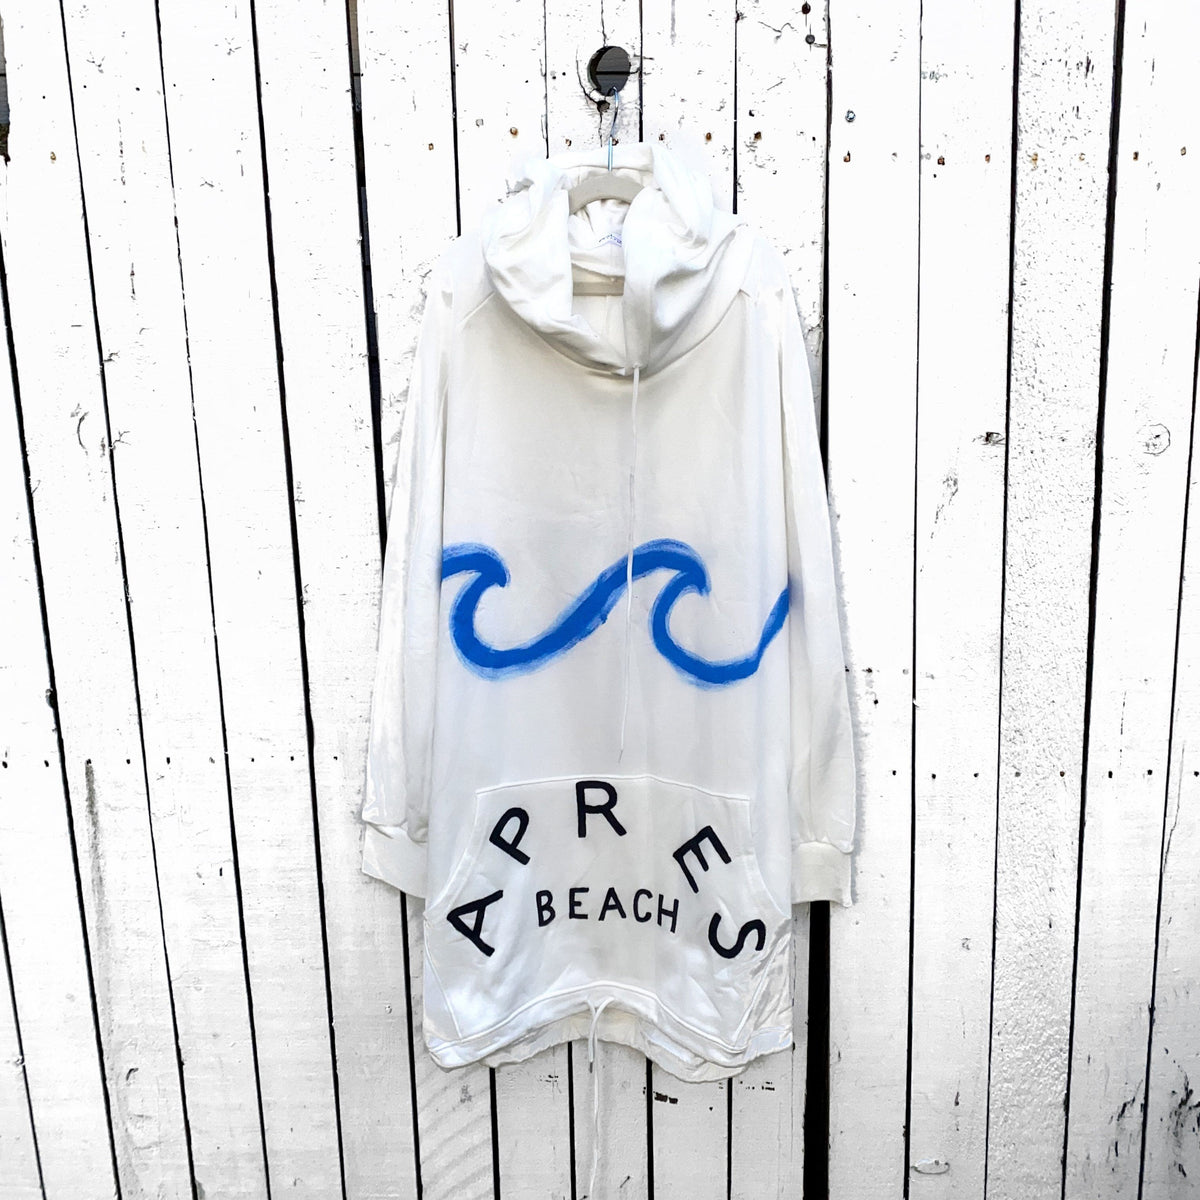 Oversized white sweatshirt dress. Blue wave painted along entire sweatshirt, on chest area, with APRES BEACH painted in black on front pocket. Signed @wrenandglory.